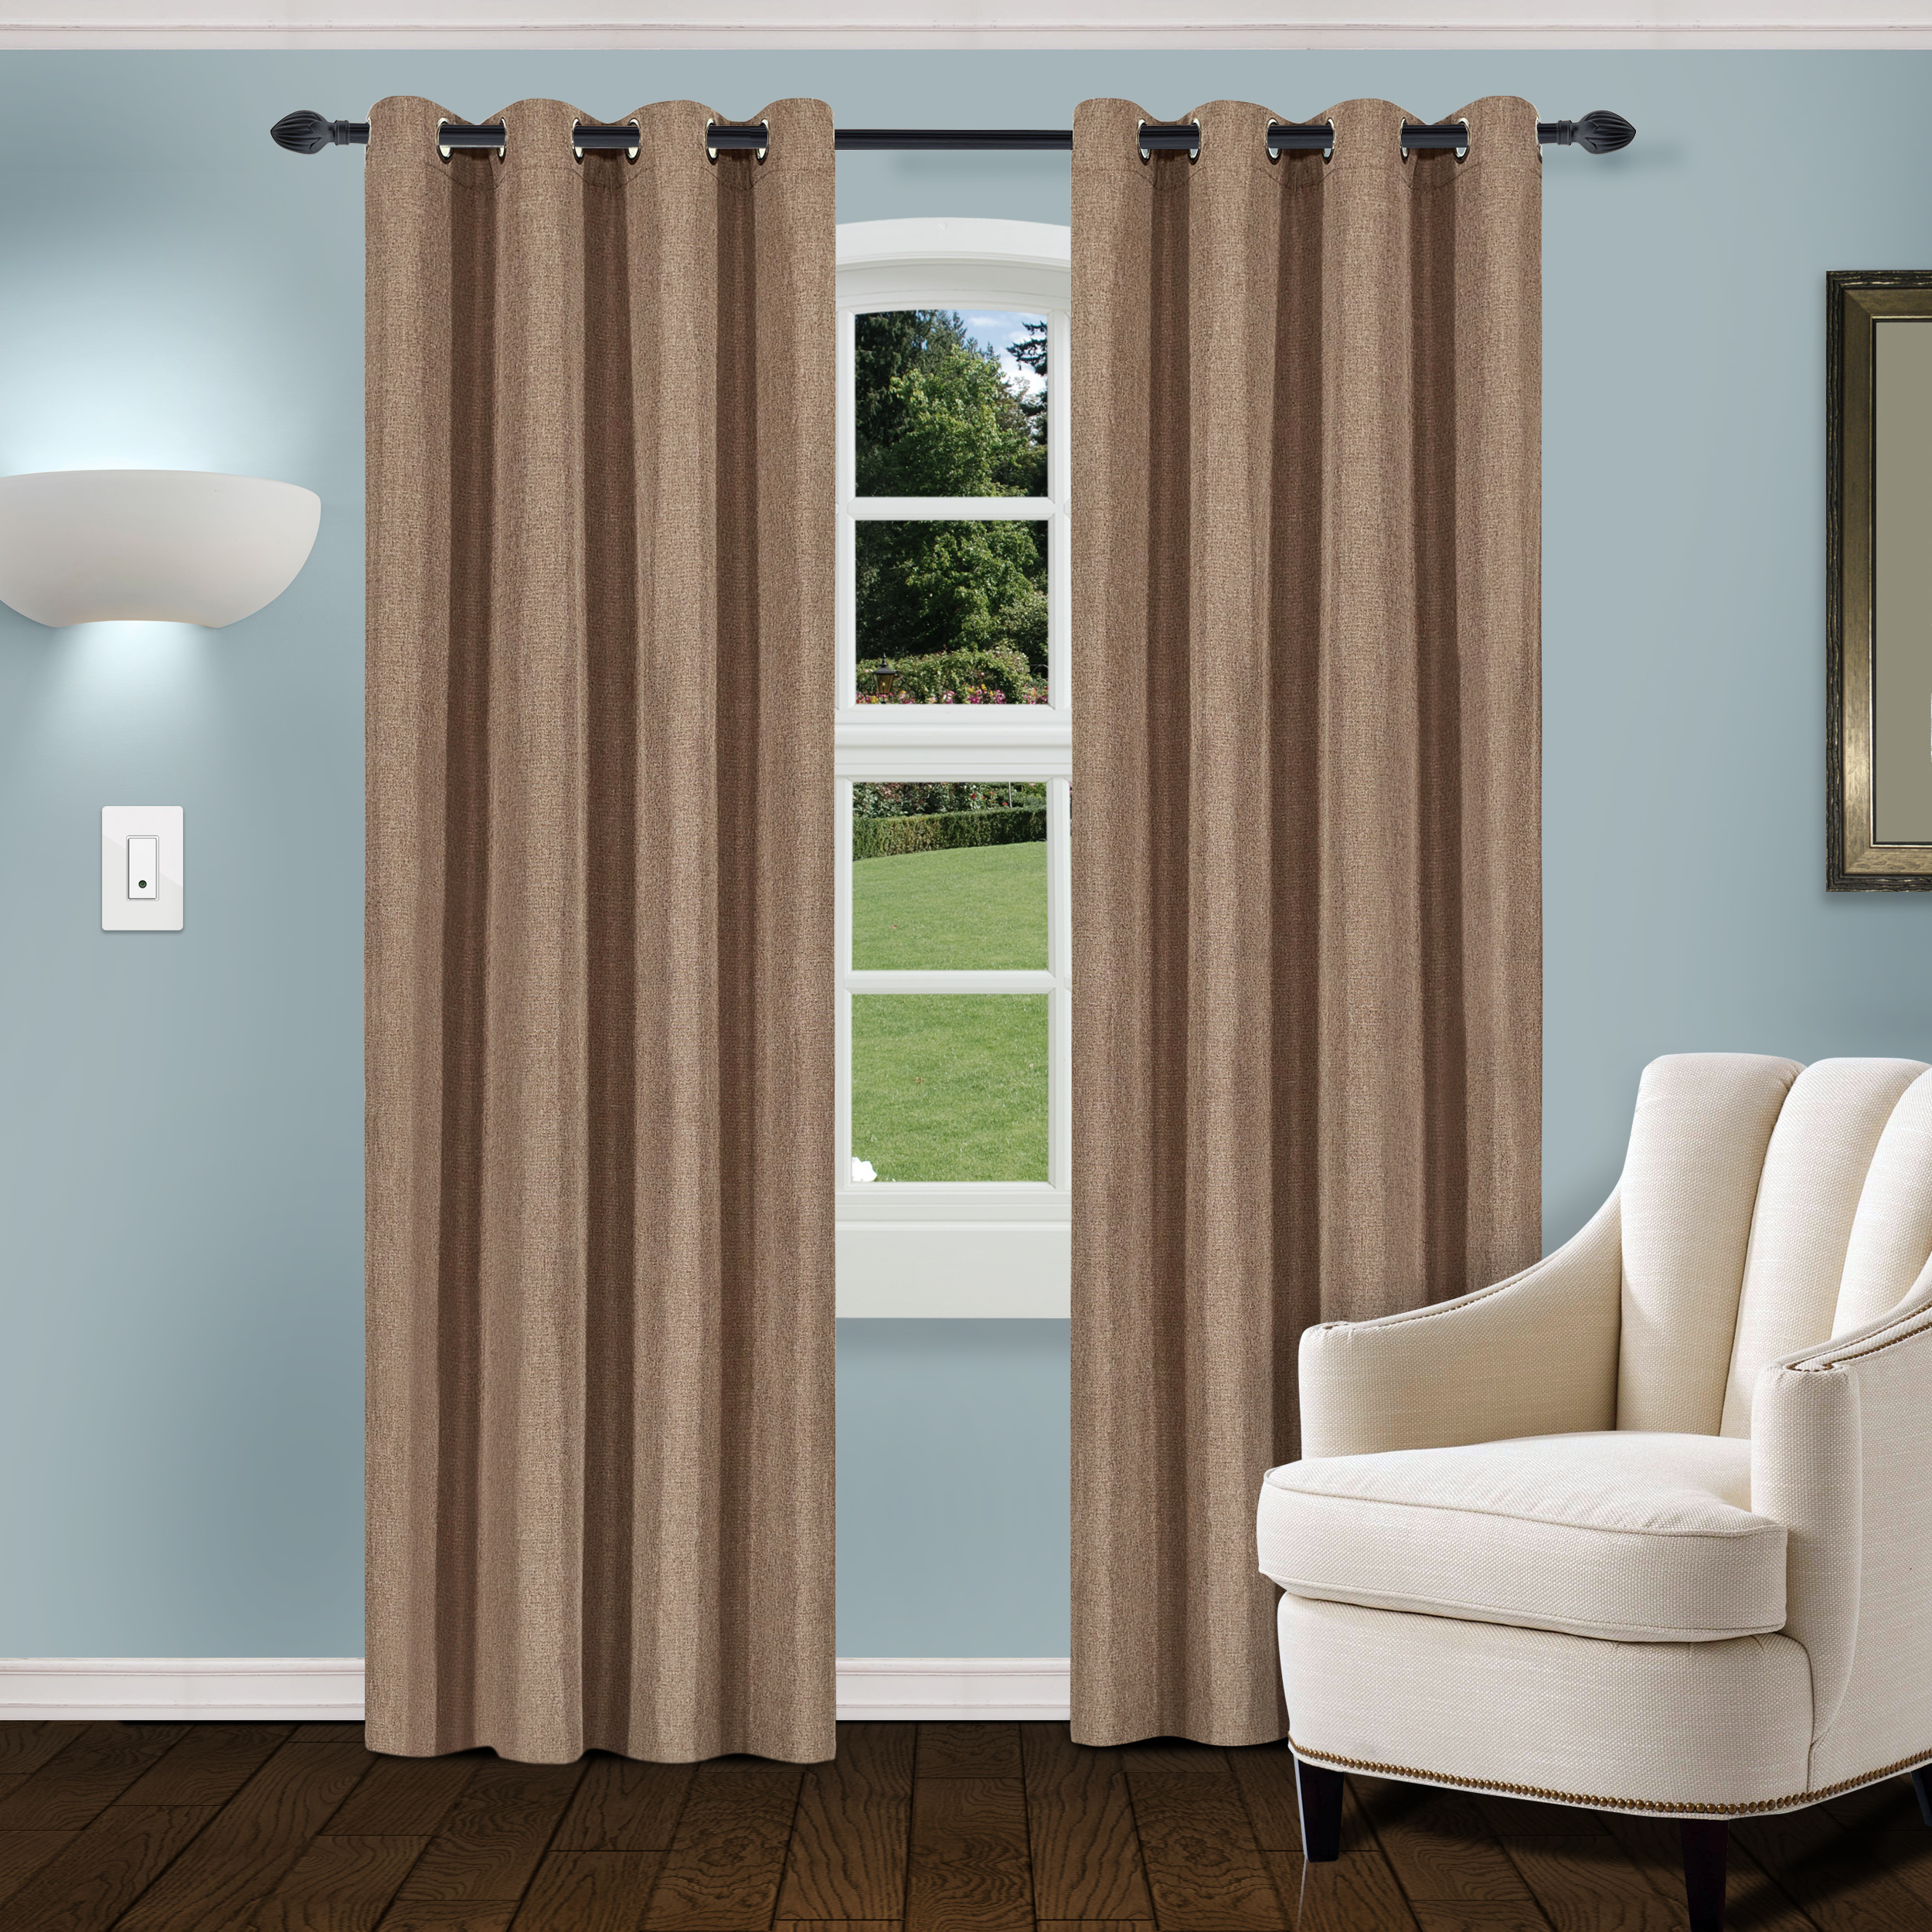 Latest Superior Solid Insulated Thermal Blackout Grommet Curtain Panel Pairs With Superior Linen Textured Blackout Curtain Set Of 2 With Grommet Top Header (Gallery 8 of 20)